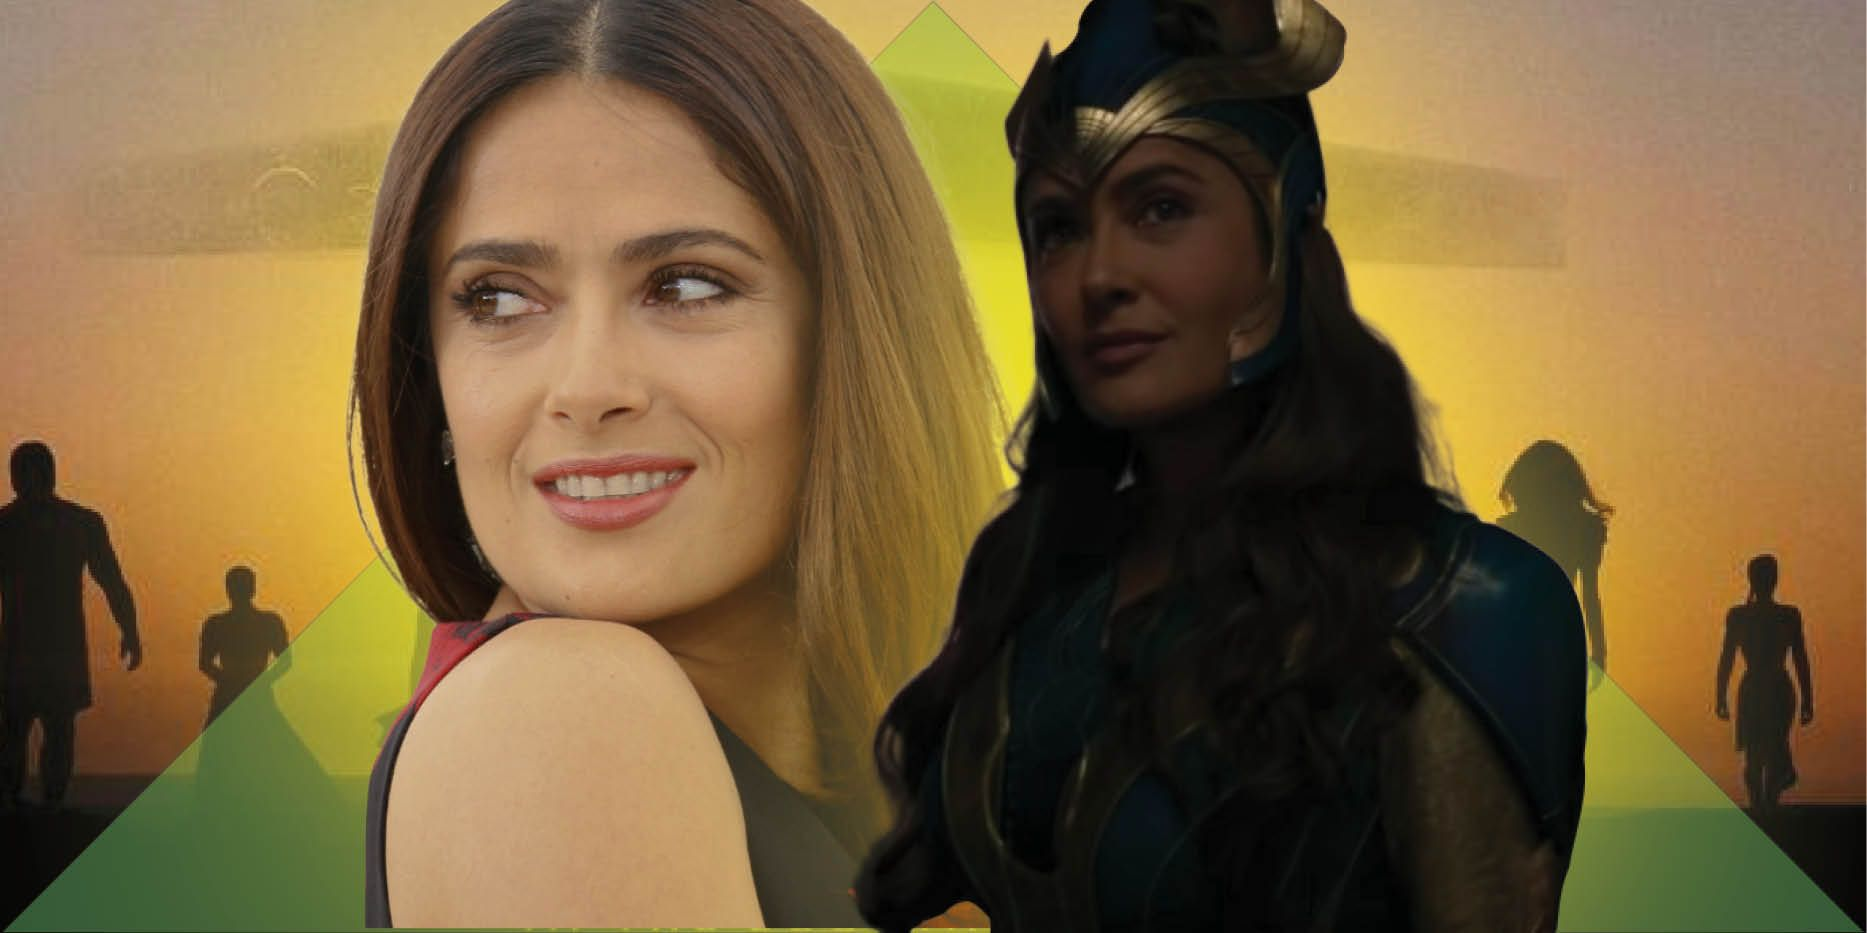 Eternals Was Stressful Because Of Marvel Secrecy Says Salma Hayek